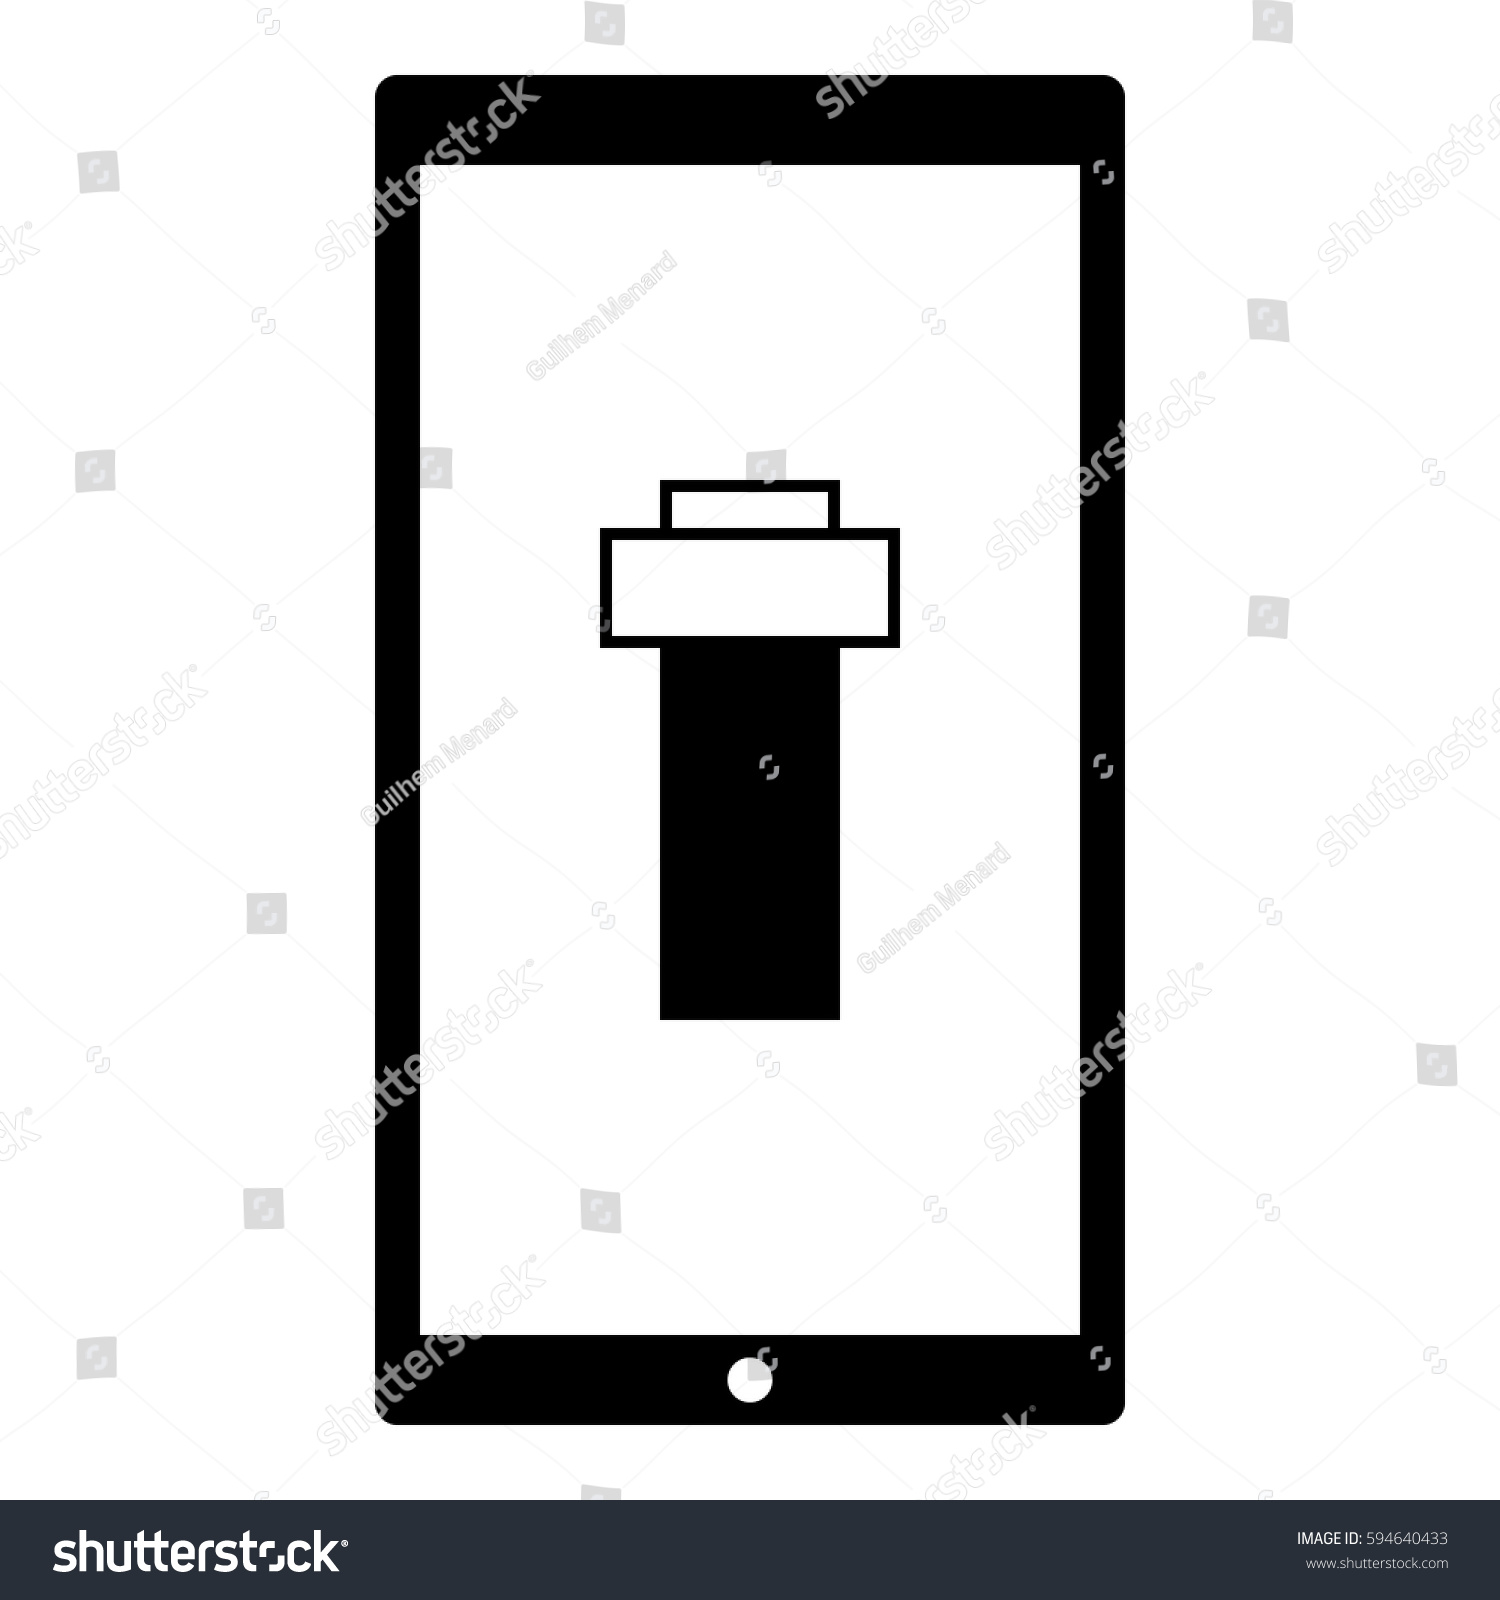 Awesome on and off switches symbols photos electrical circuit rocker switch wiring diagram icon free download wiring diagram biocorpaavc Gallery